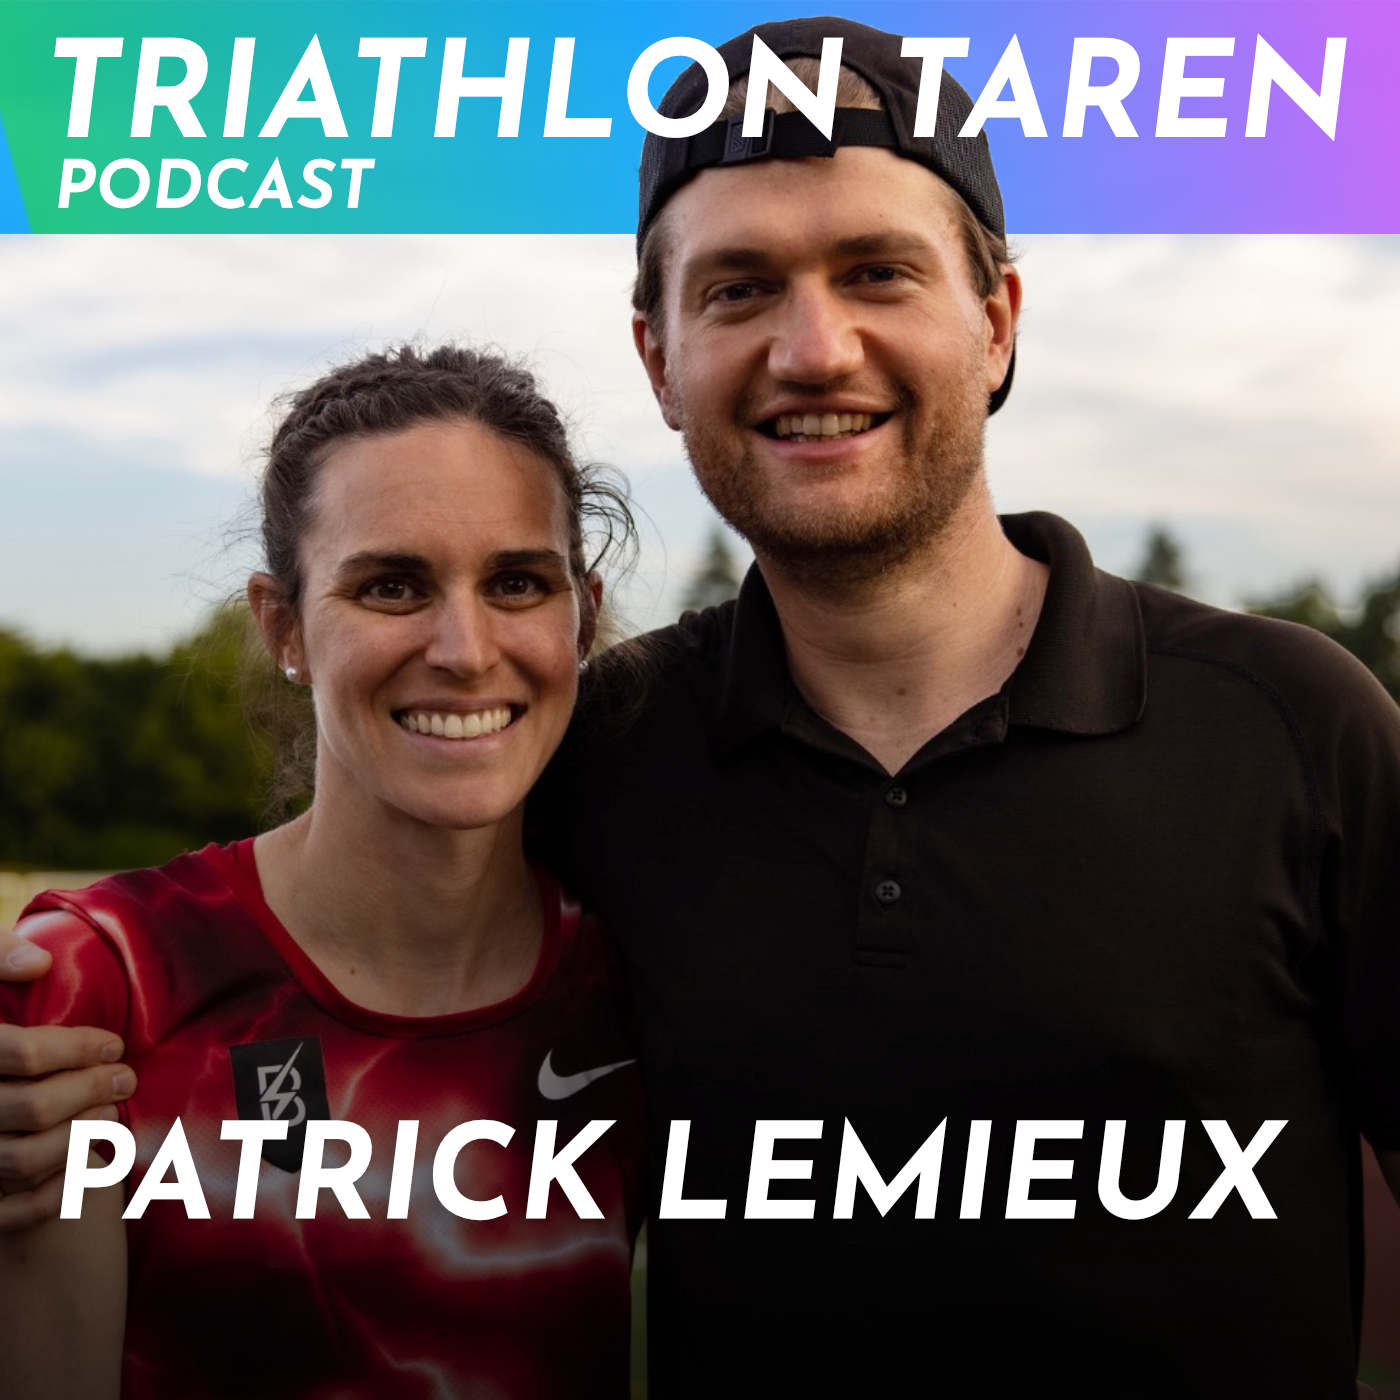 How To Get Sponsored In Triathlon with Patrick Lemieux